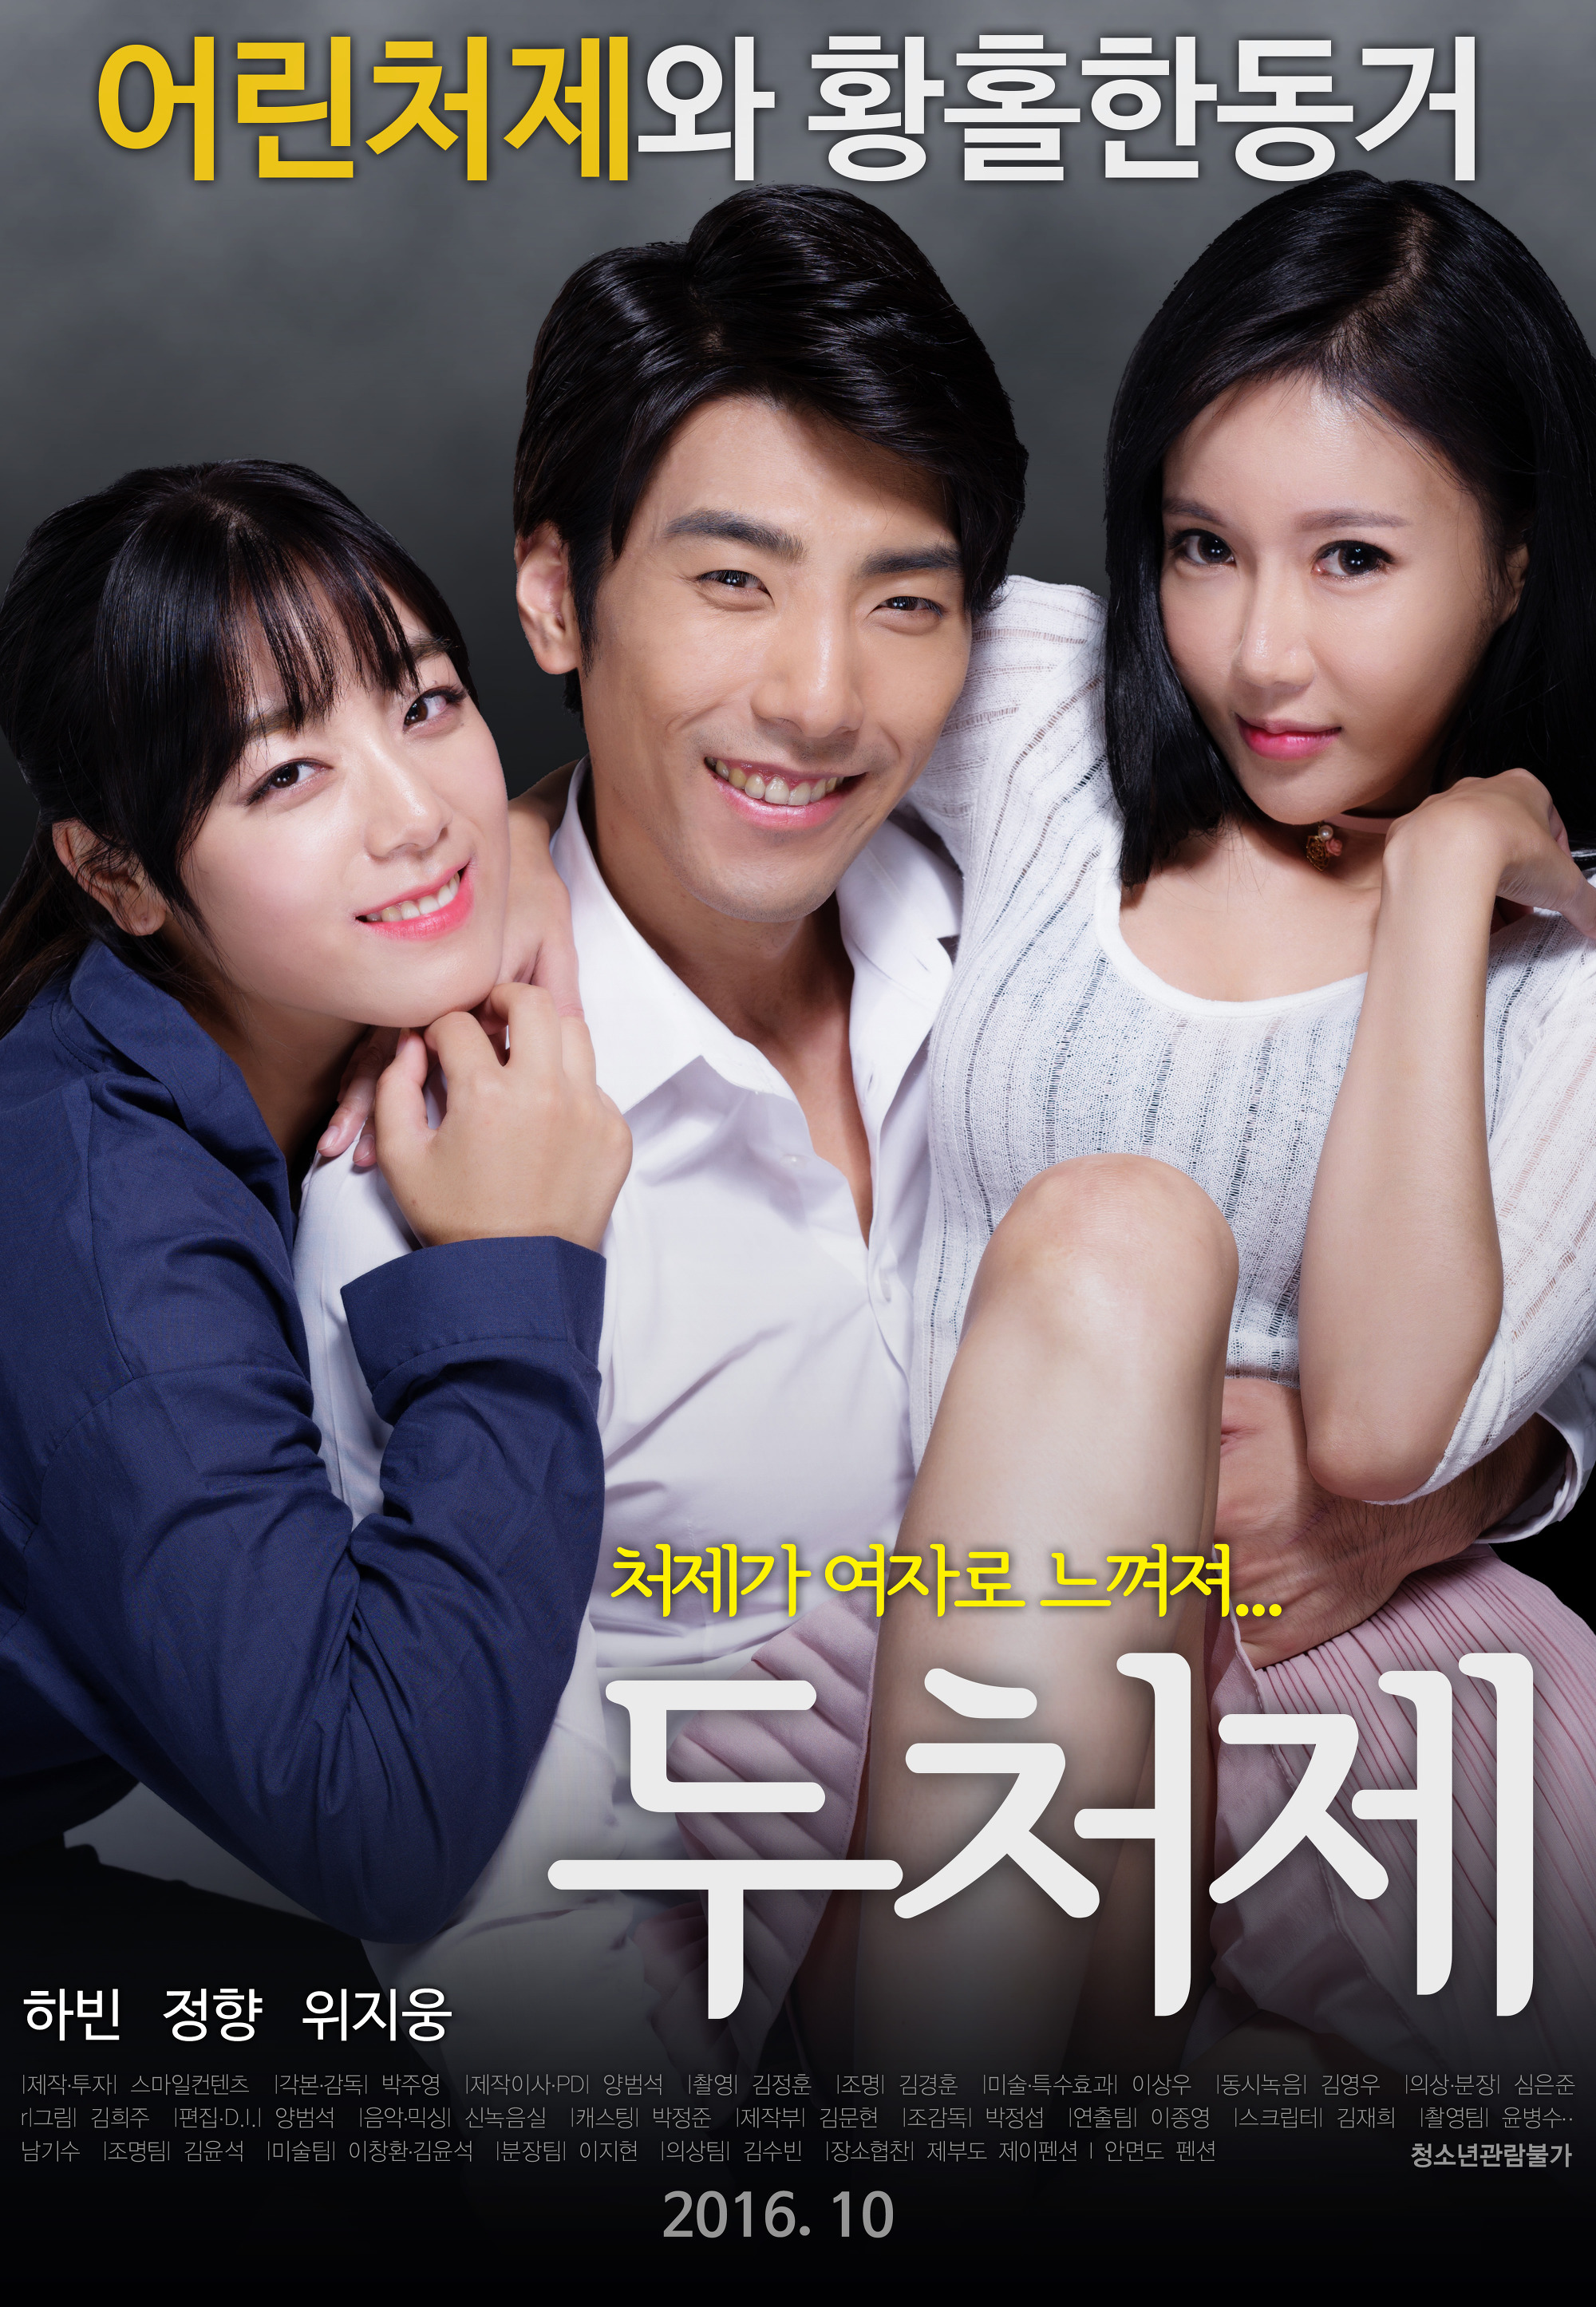 video] adult rated trailer released for the korean movie 'two